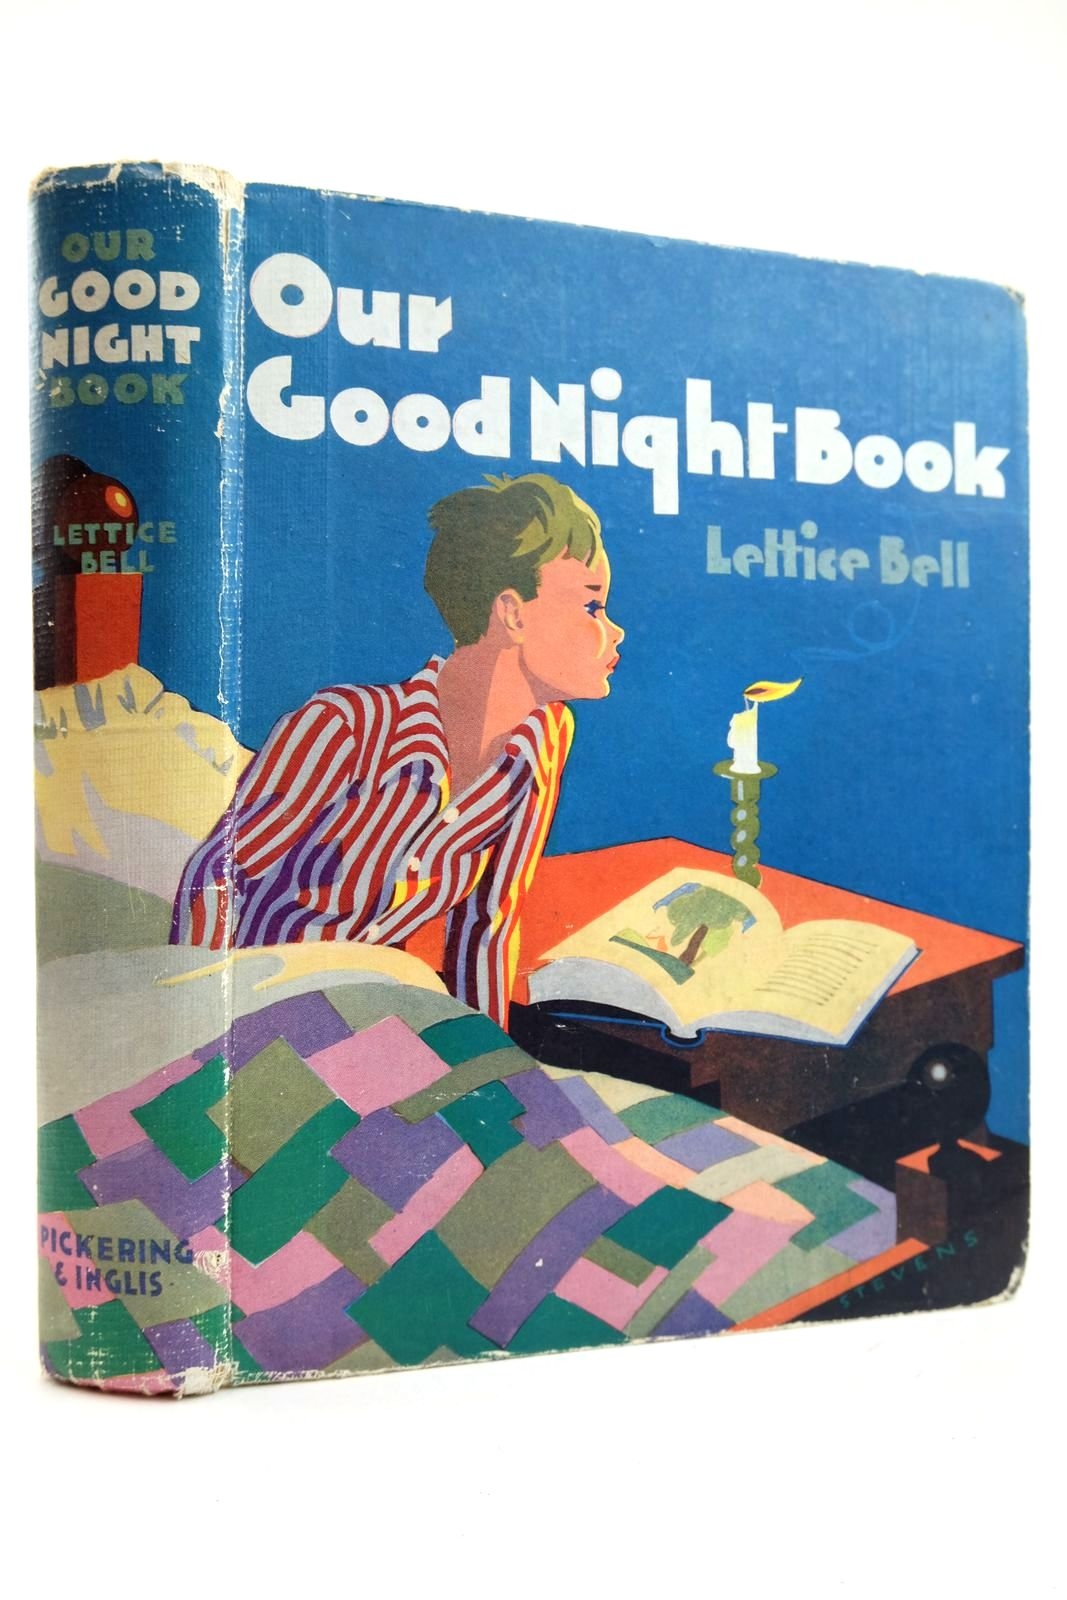 Photo of OUR GOOD-NIGHT BOOK written by Bell, Lettice published by Pickering & Inglis (STOCK CODE: 2132417)  for sale by Stella & Rose's Books